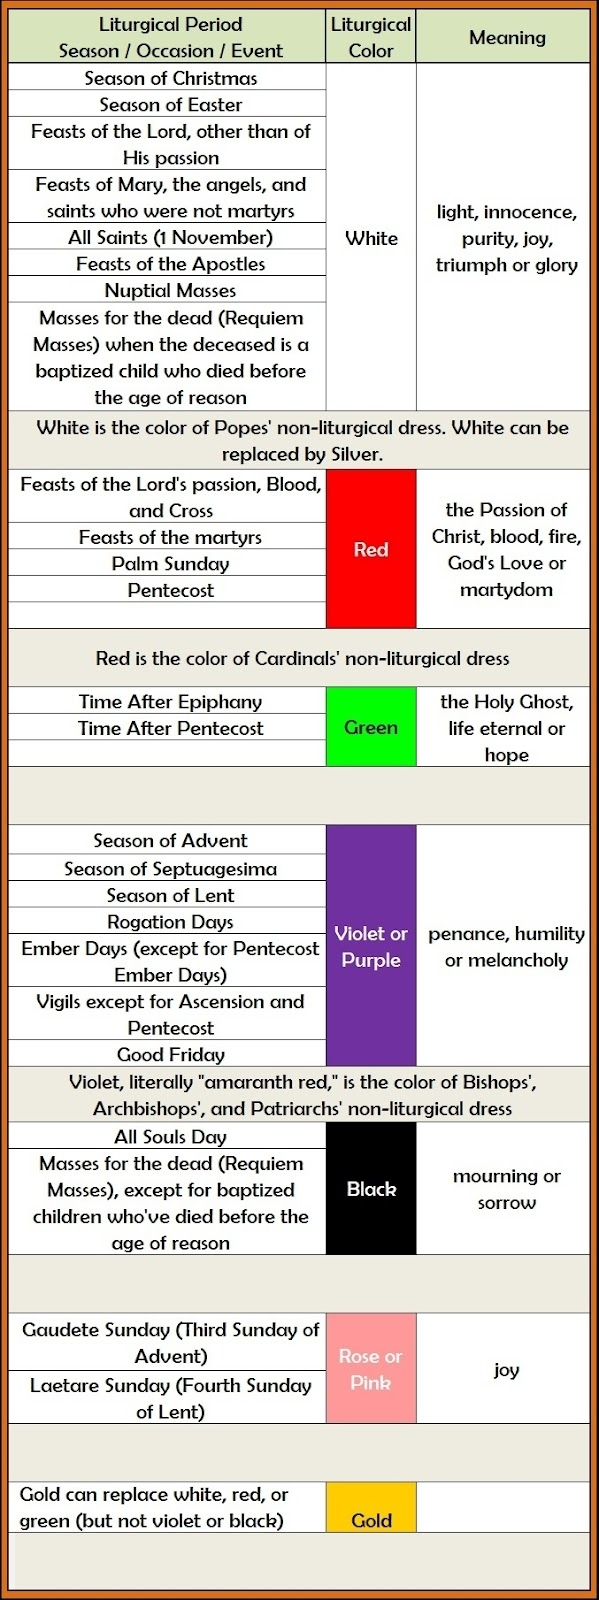 St. Luke Catholic Church: Liturgical Calendar with regard to Liturgical Calendar Lent And Holy Week 2020